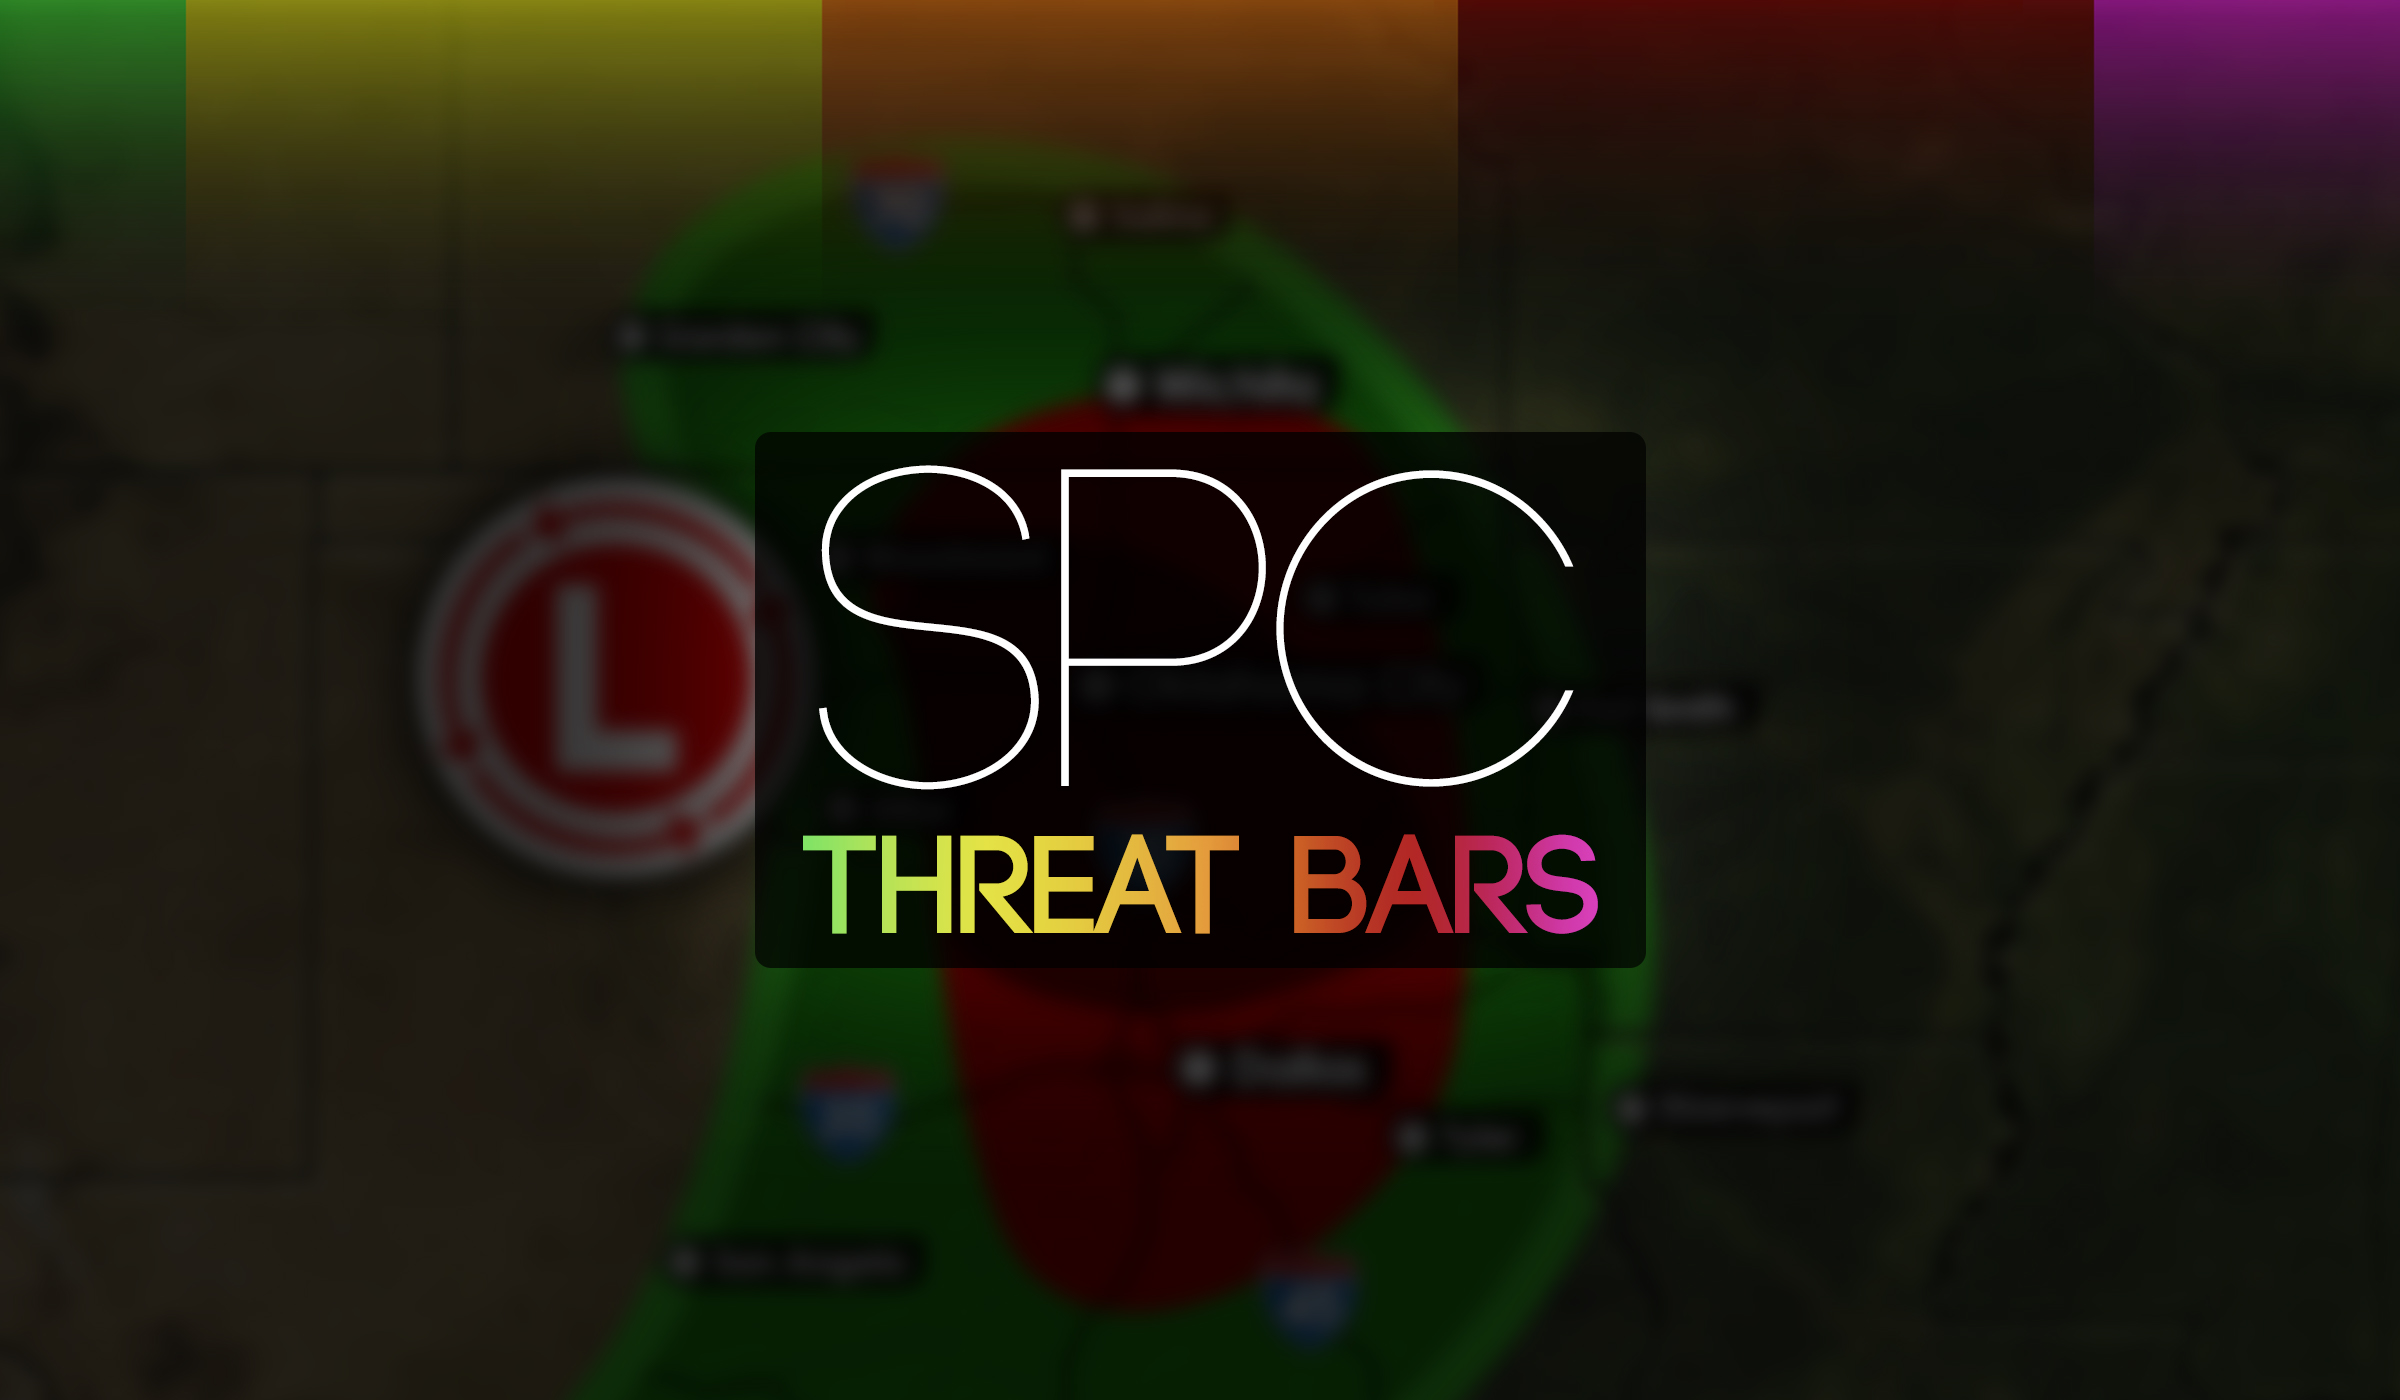 SPC Threat Bars